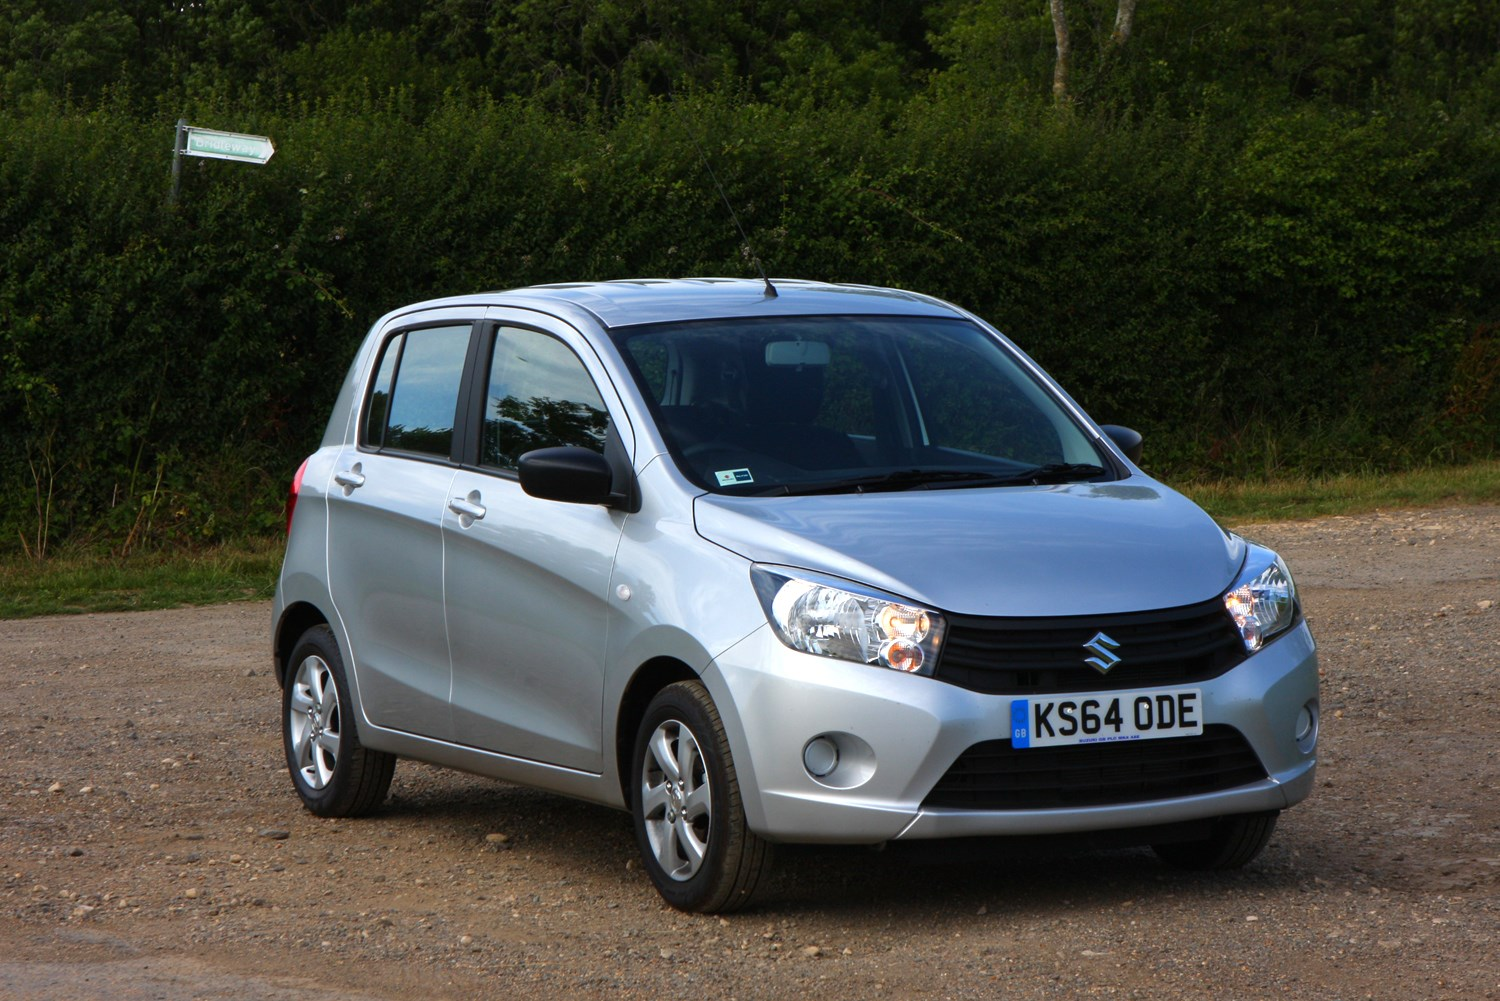 suzuki celerio hatchback review 2015 parkers. Black Bedroom Furniture Sets. Home Design Ideas